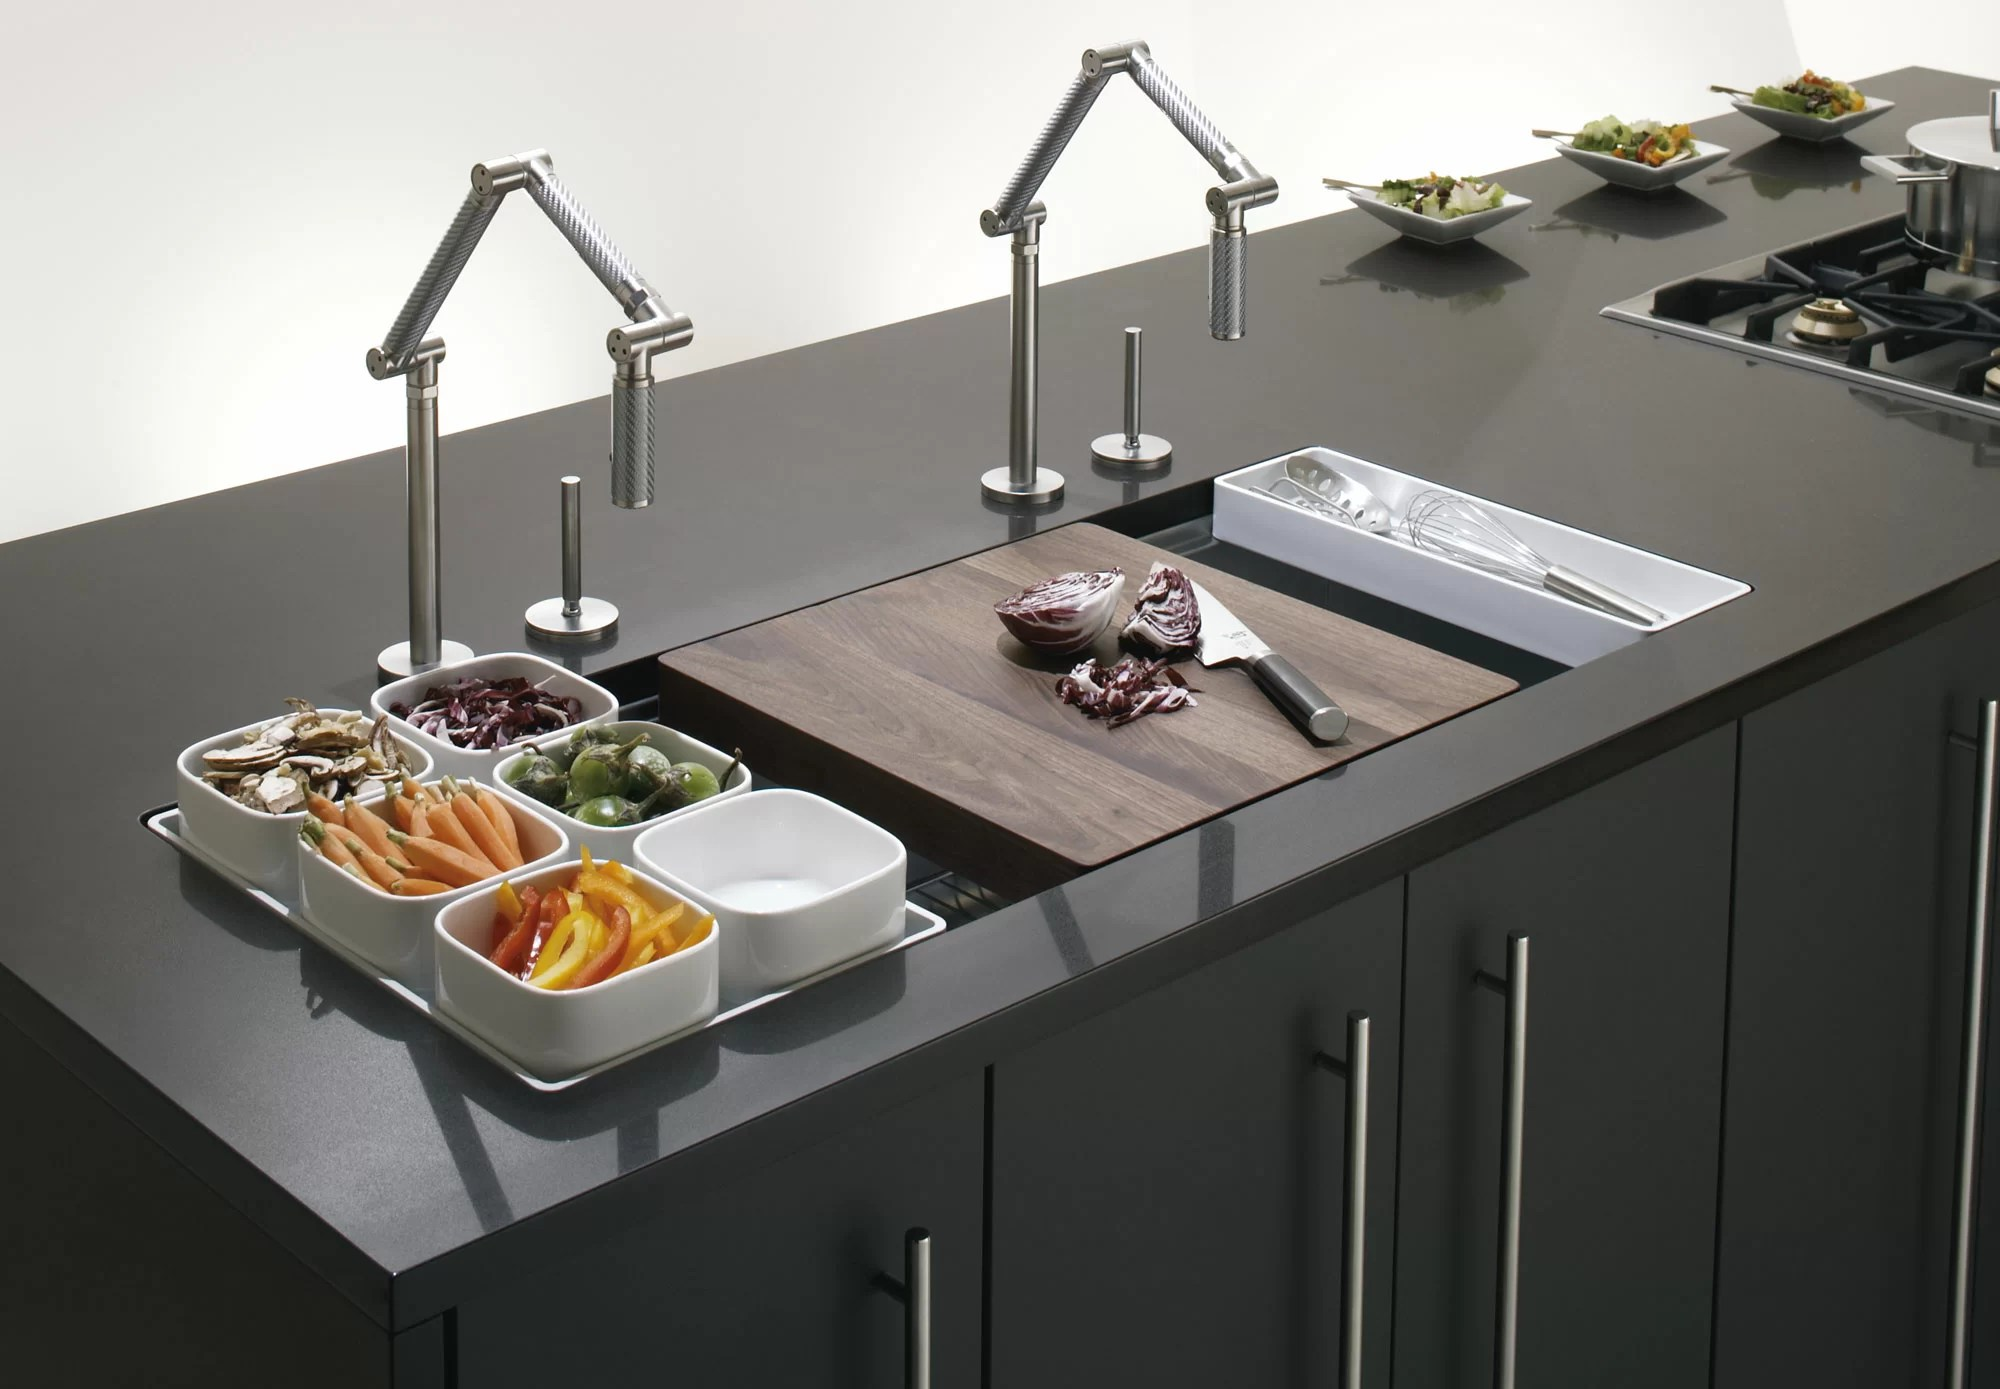 stages 45 l x 18 1 2 w x 9 13 16 undermount single bowl with wet surface area kitchen sink